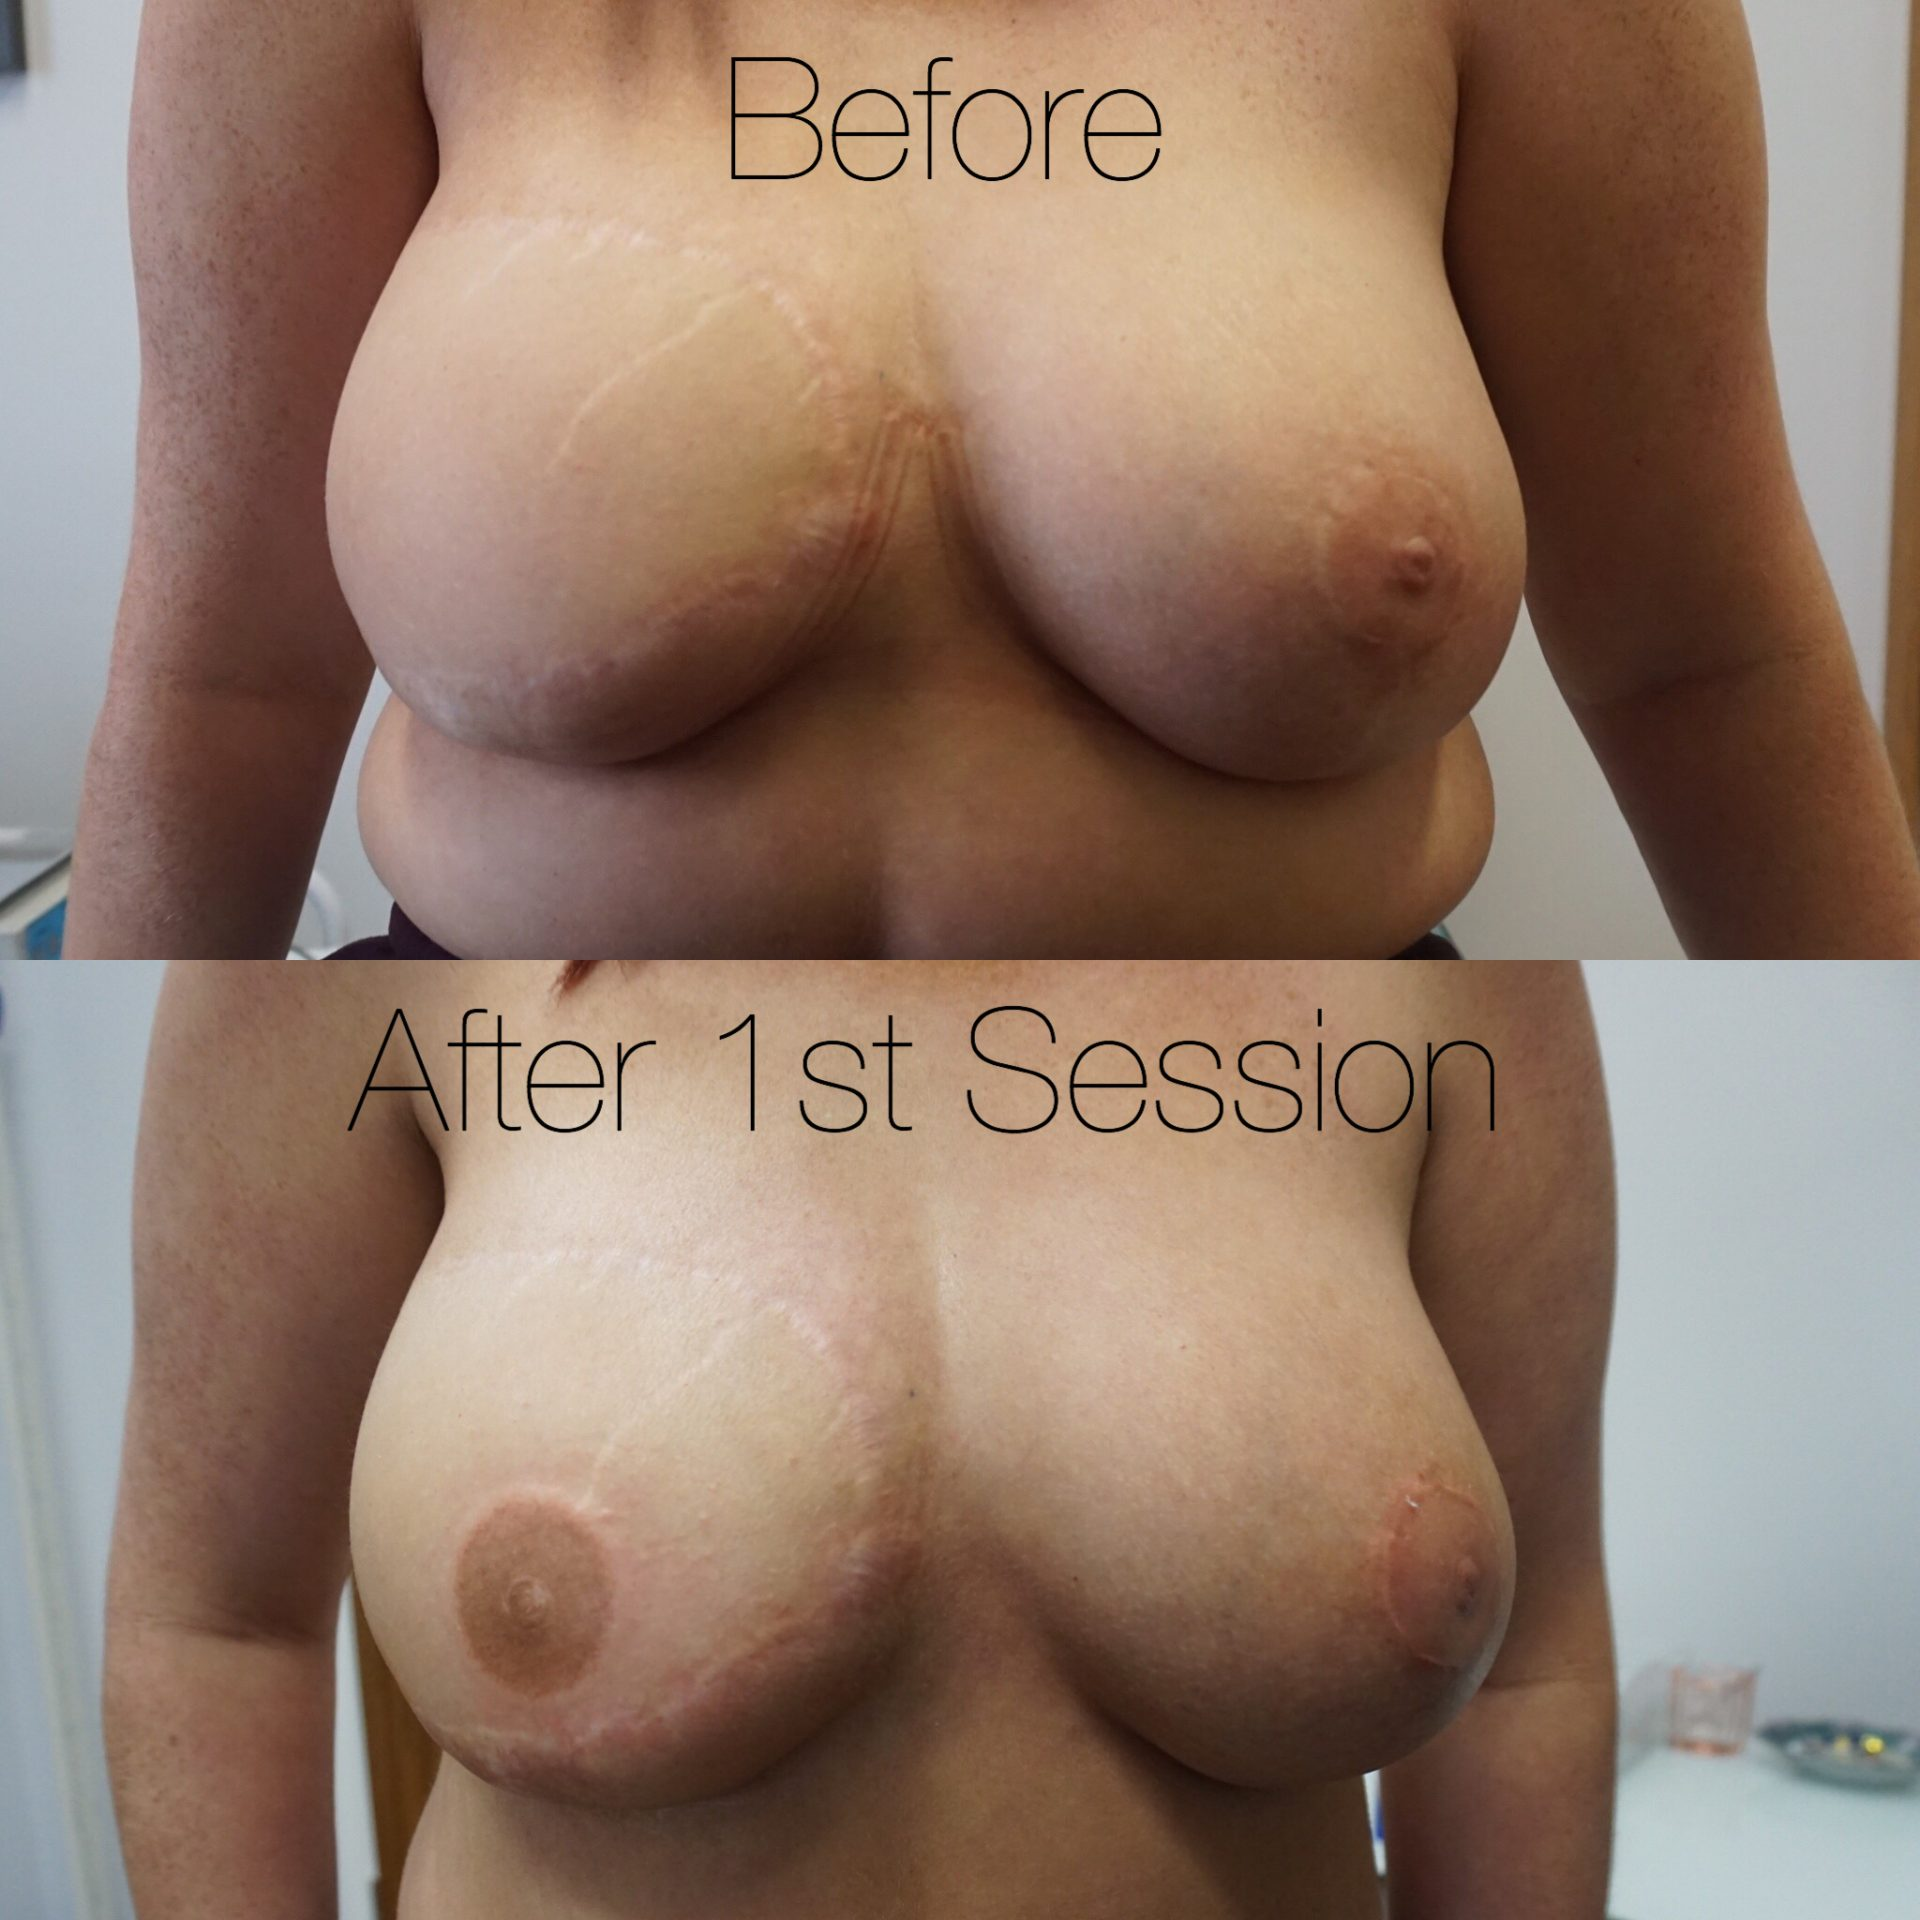 Before & After: Areola re-pigmentation